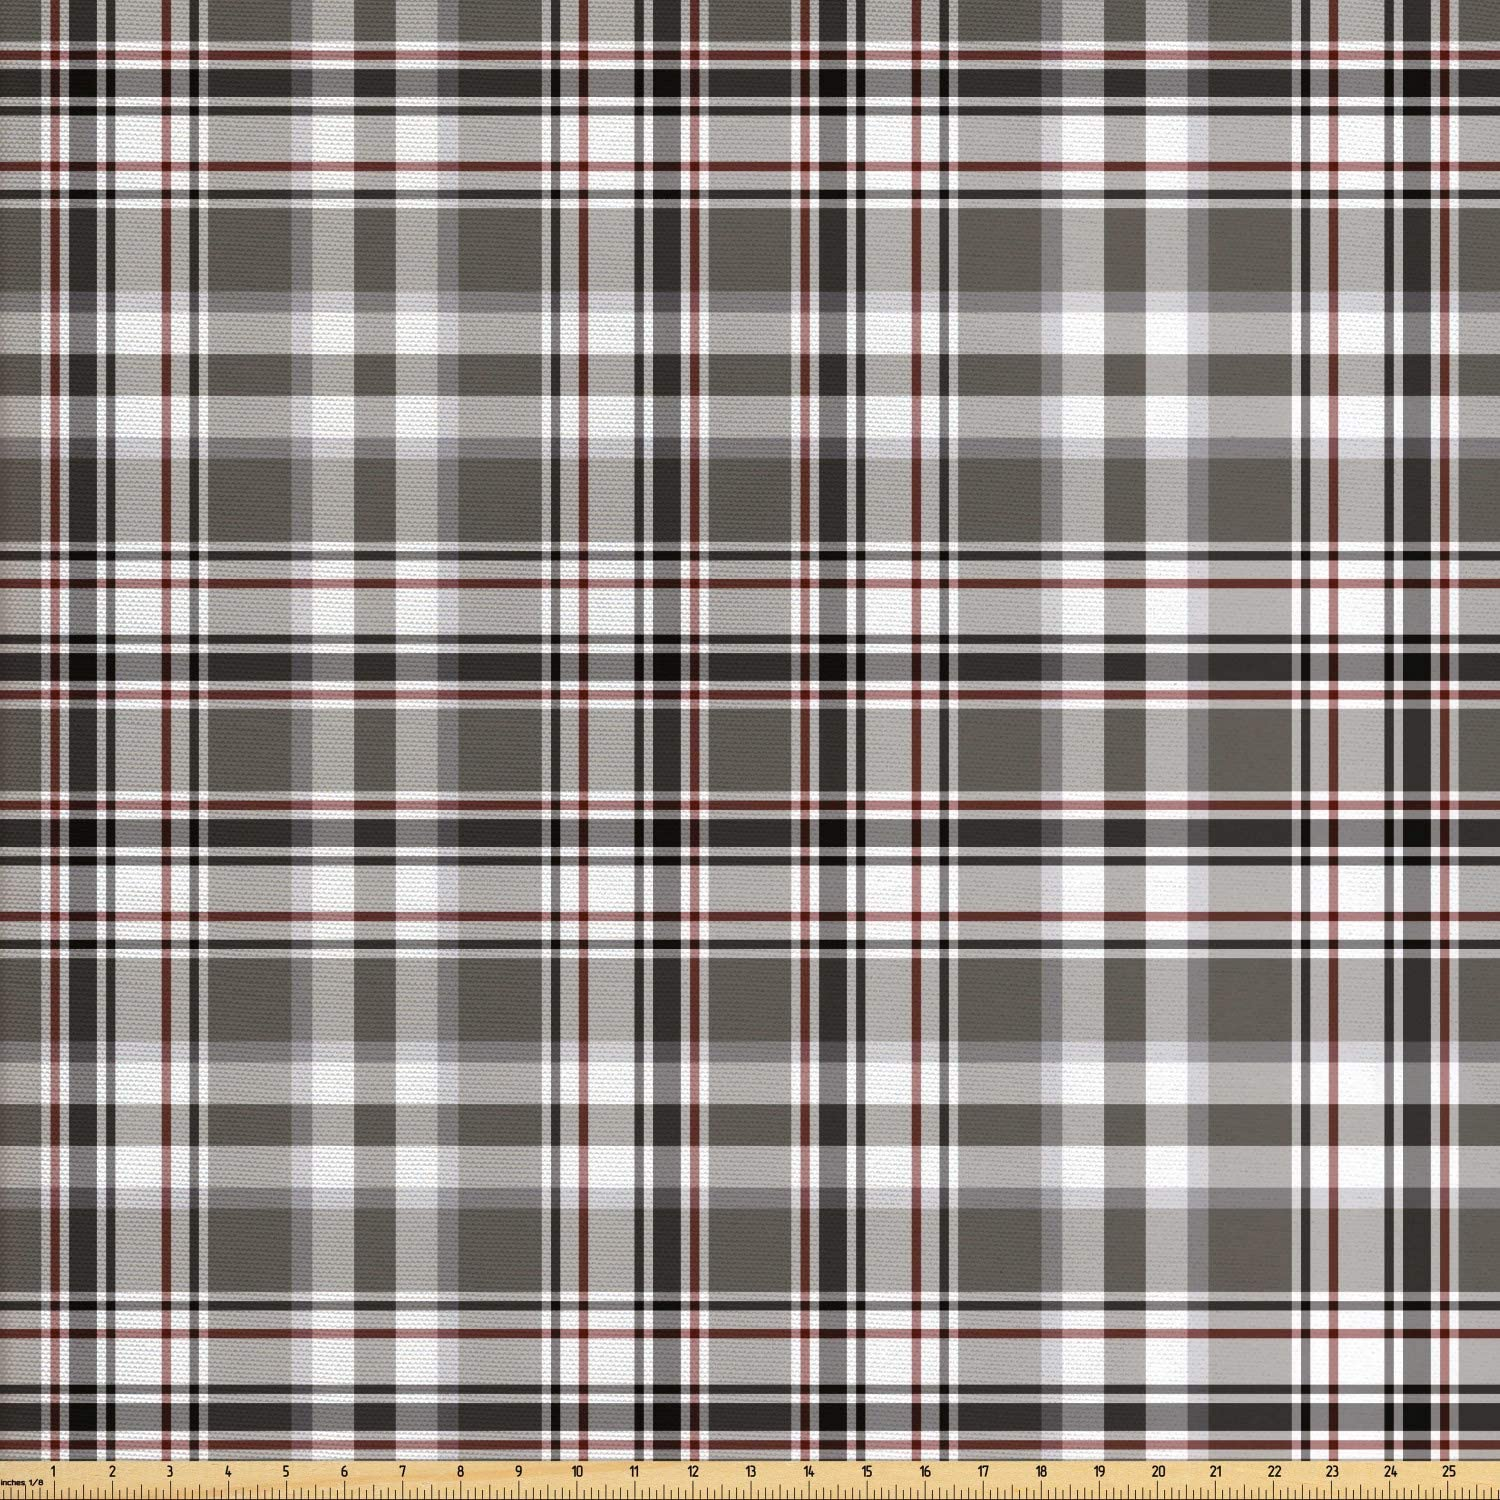 Lunarable Plaid Fabric by The Yard, Classic English Tartan Plaid Cells Stripes Scottish Geometric Traditional, Decorative Fabric for Upholstery and Home Accents, 10 Yards, Burgundy Black